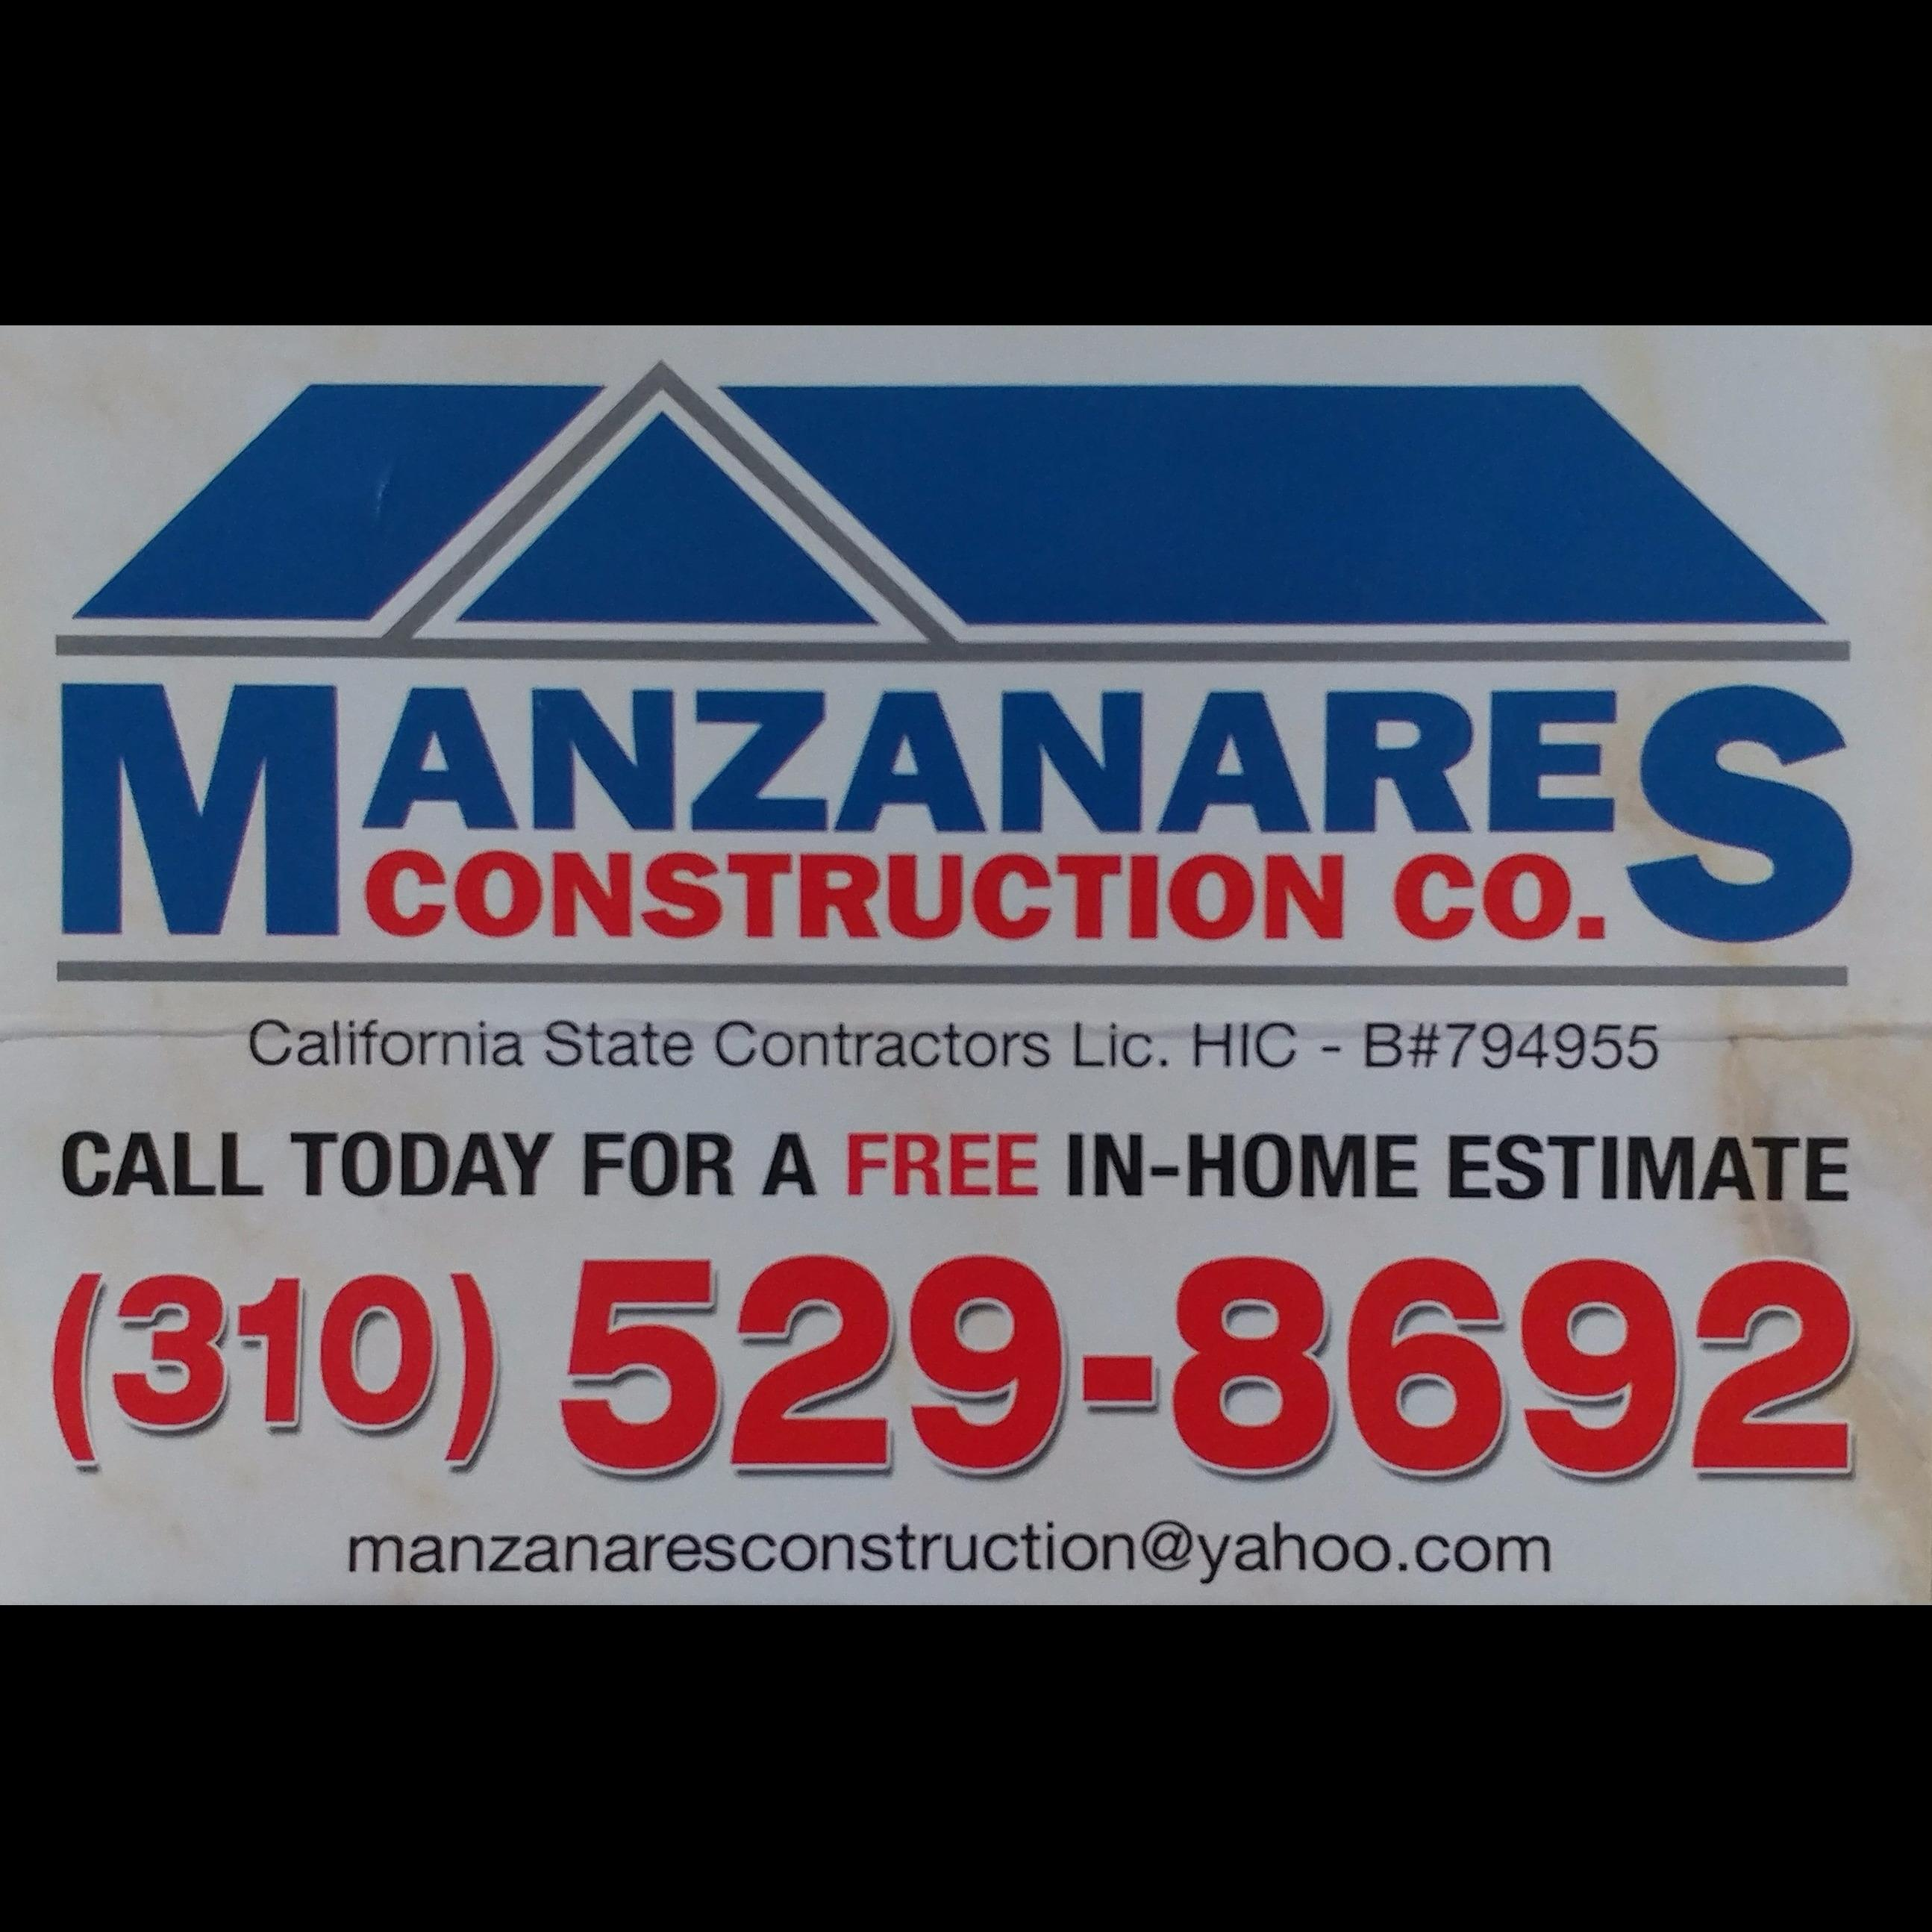 Manzanares Construction Co.